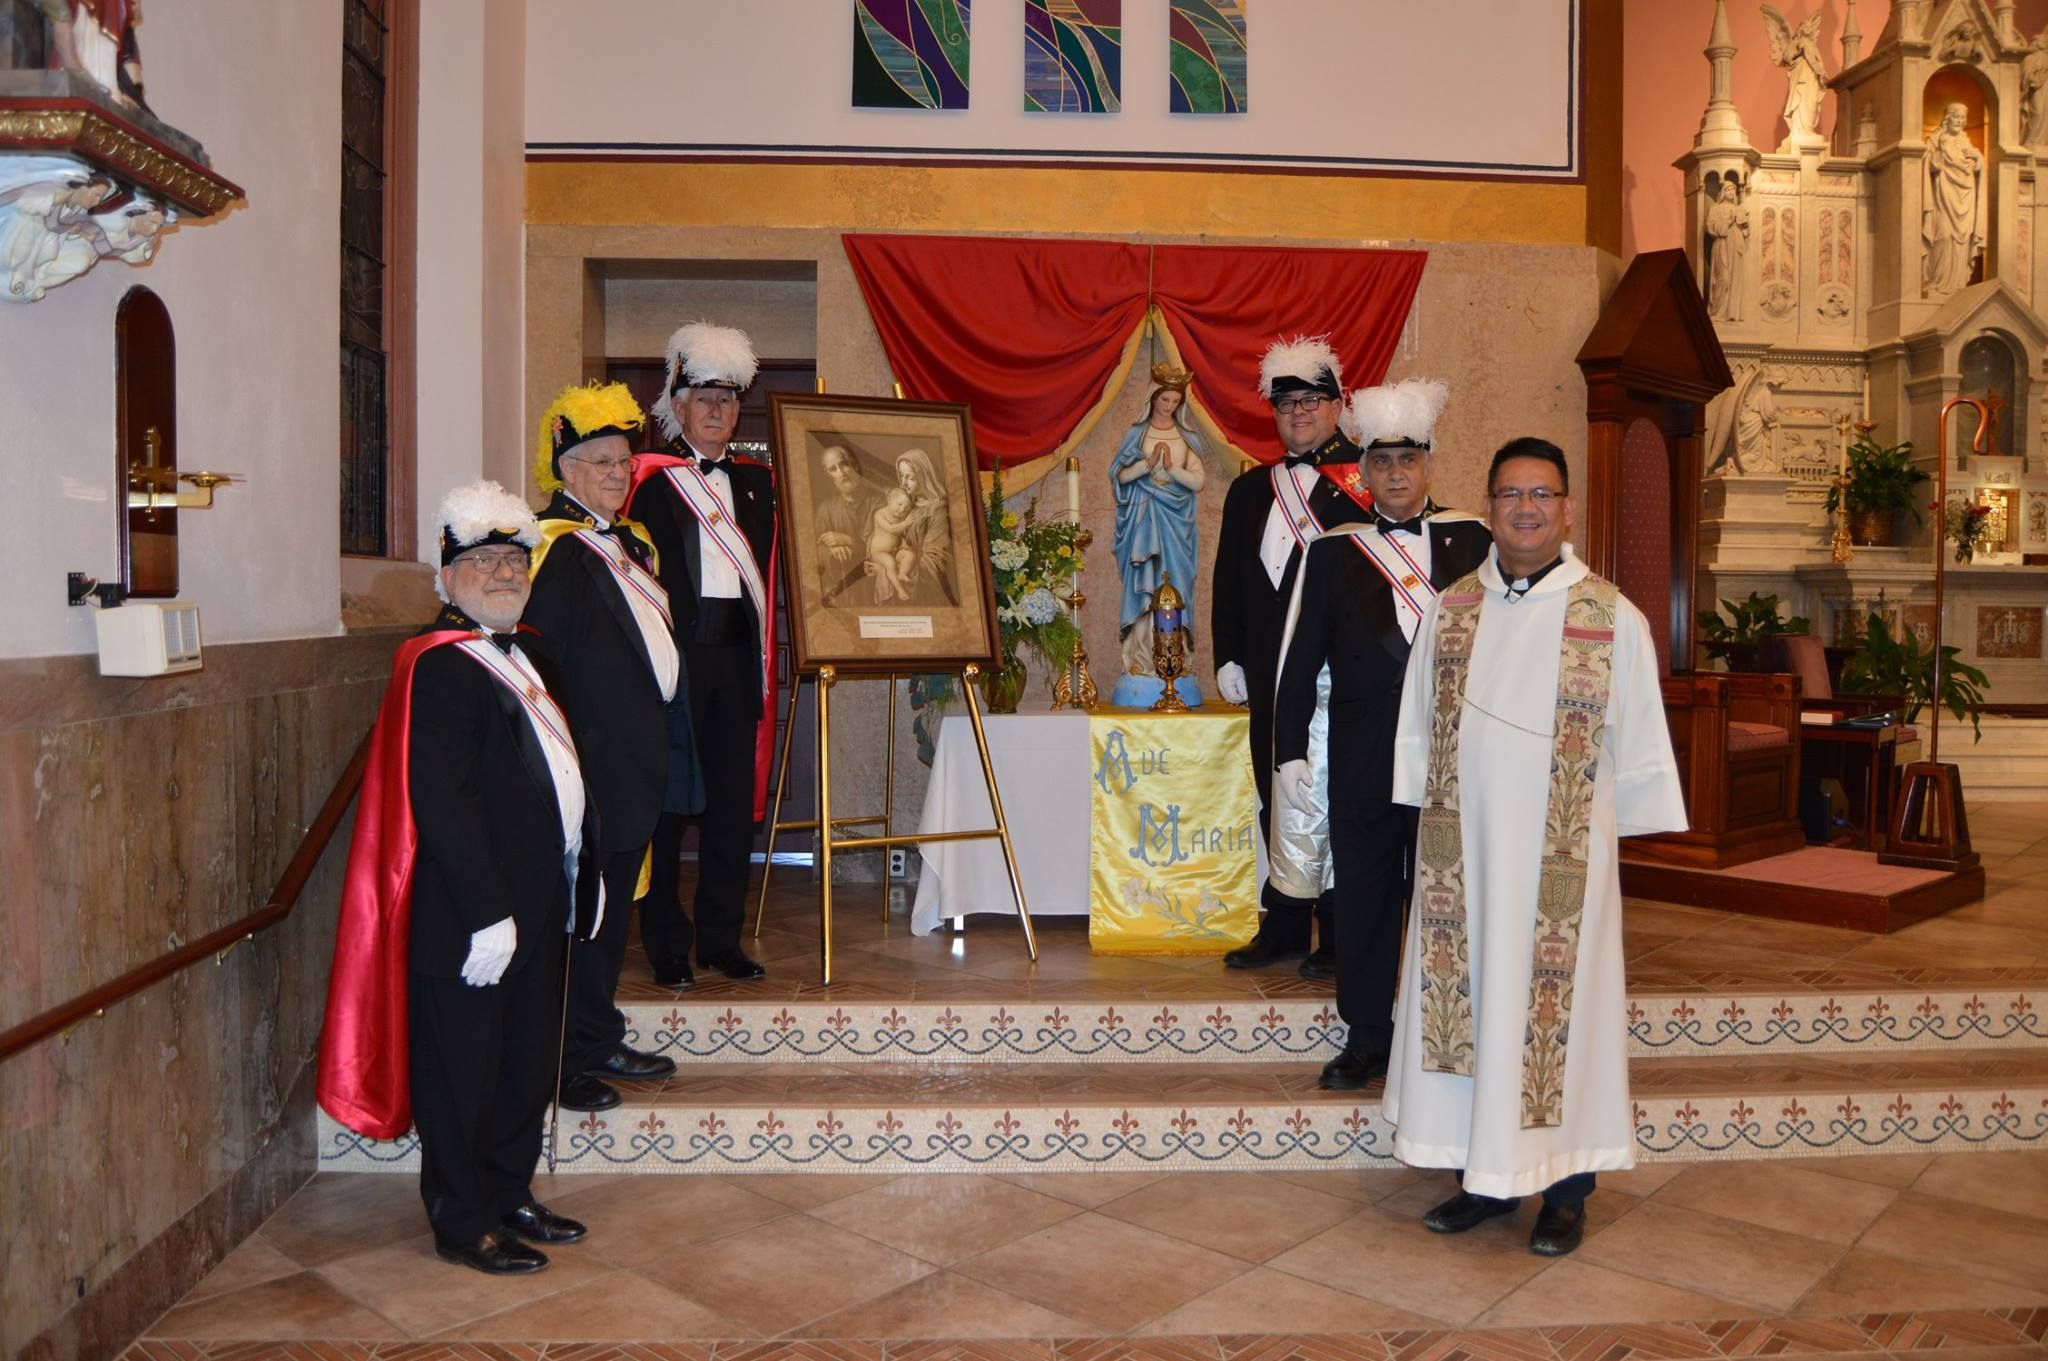 Council #12630 and Assembly #1188 displayed the Holy Family icon21 - Copy